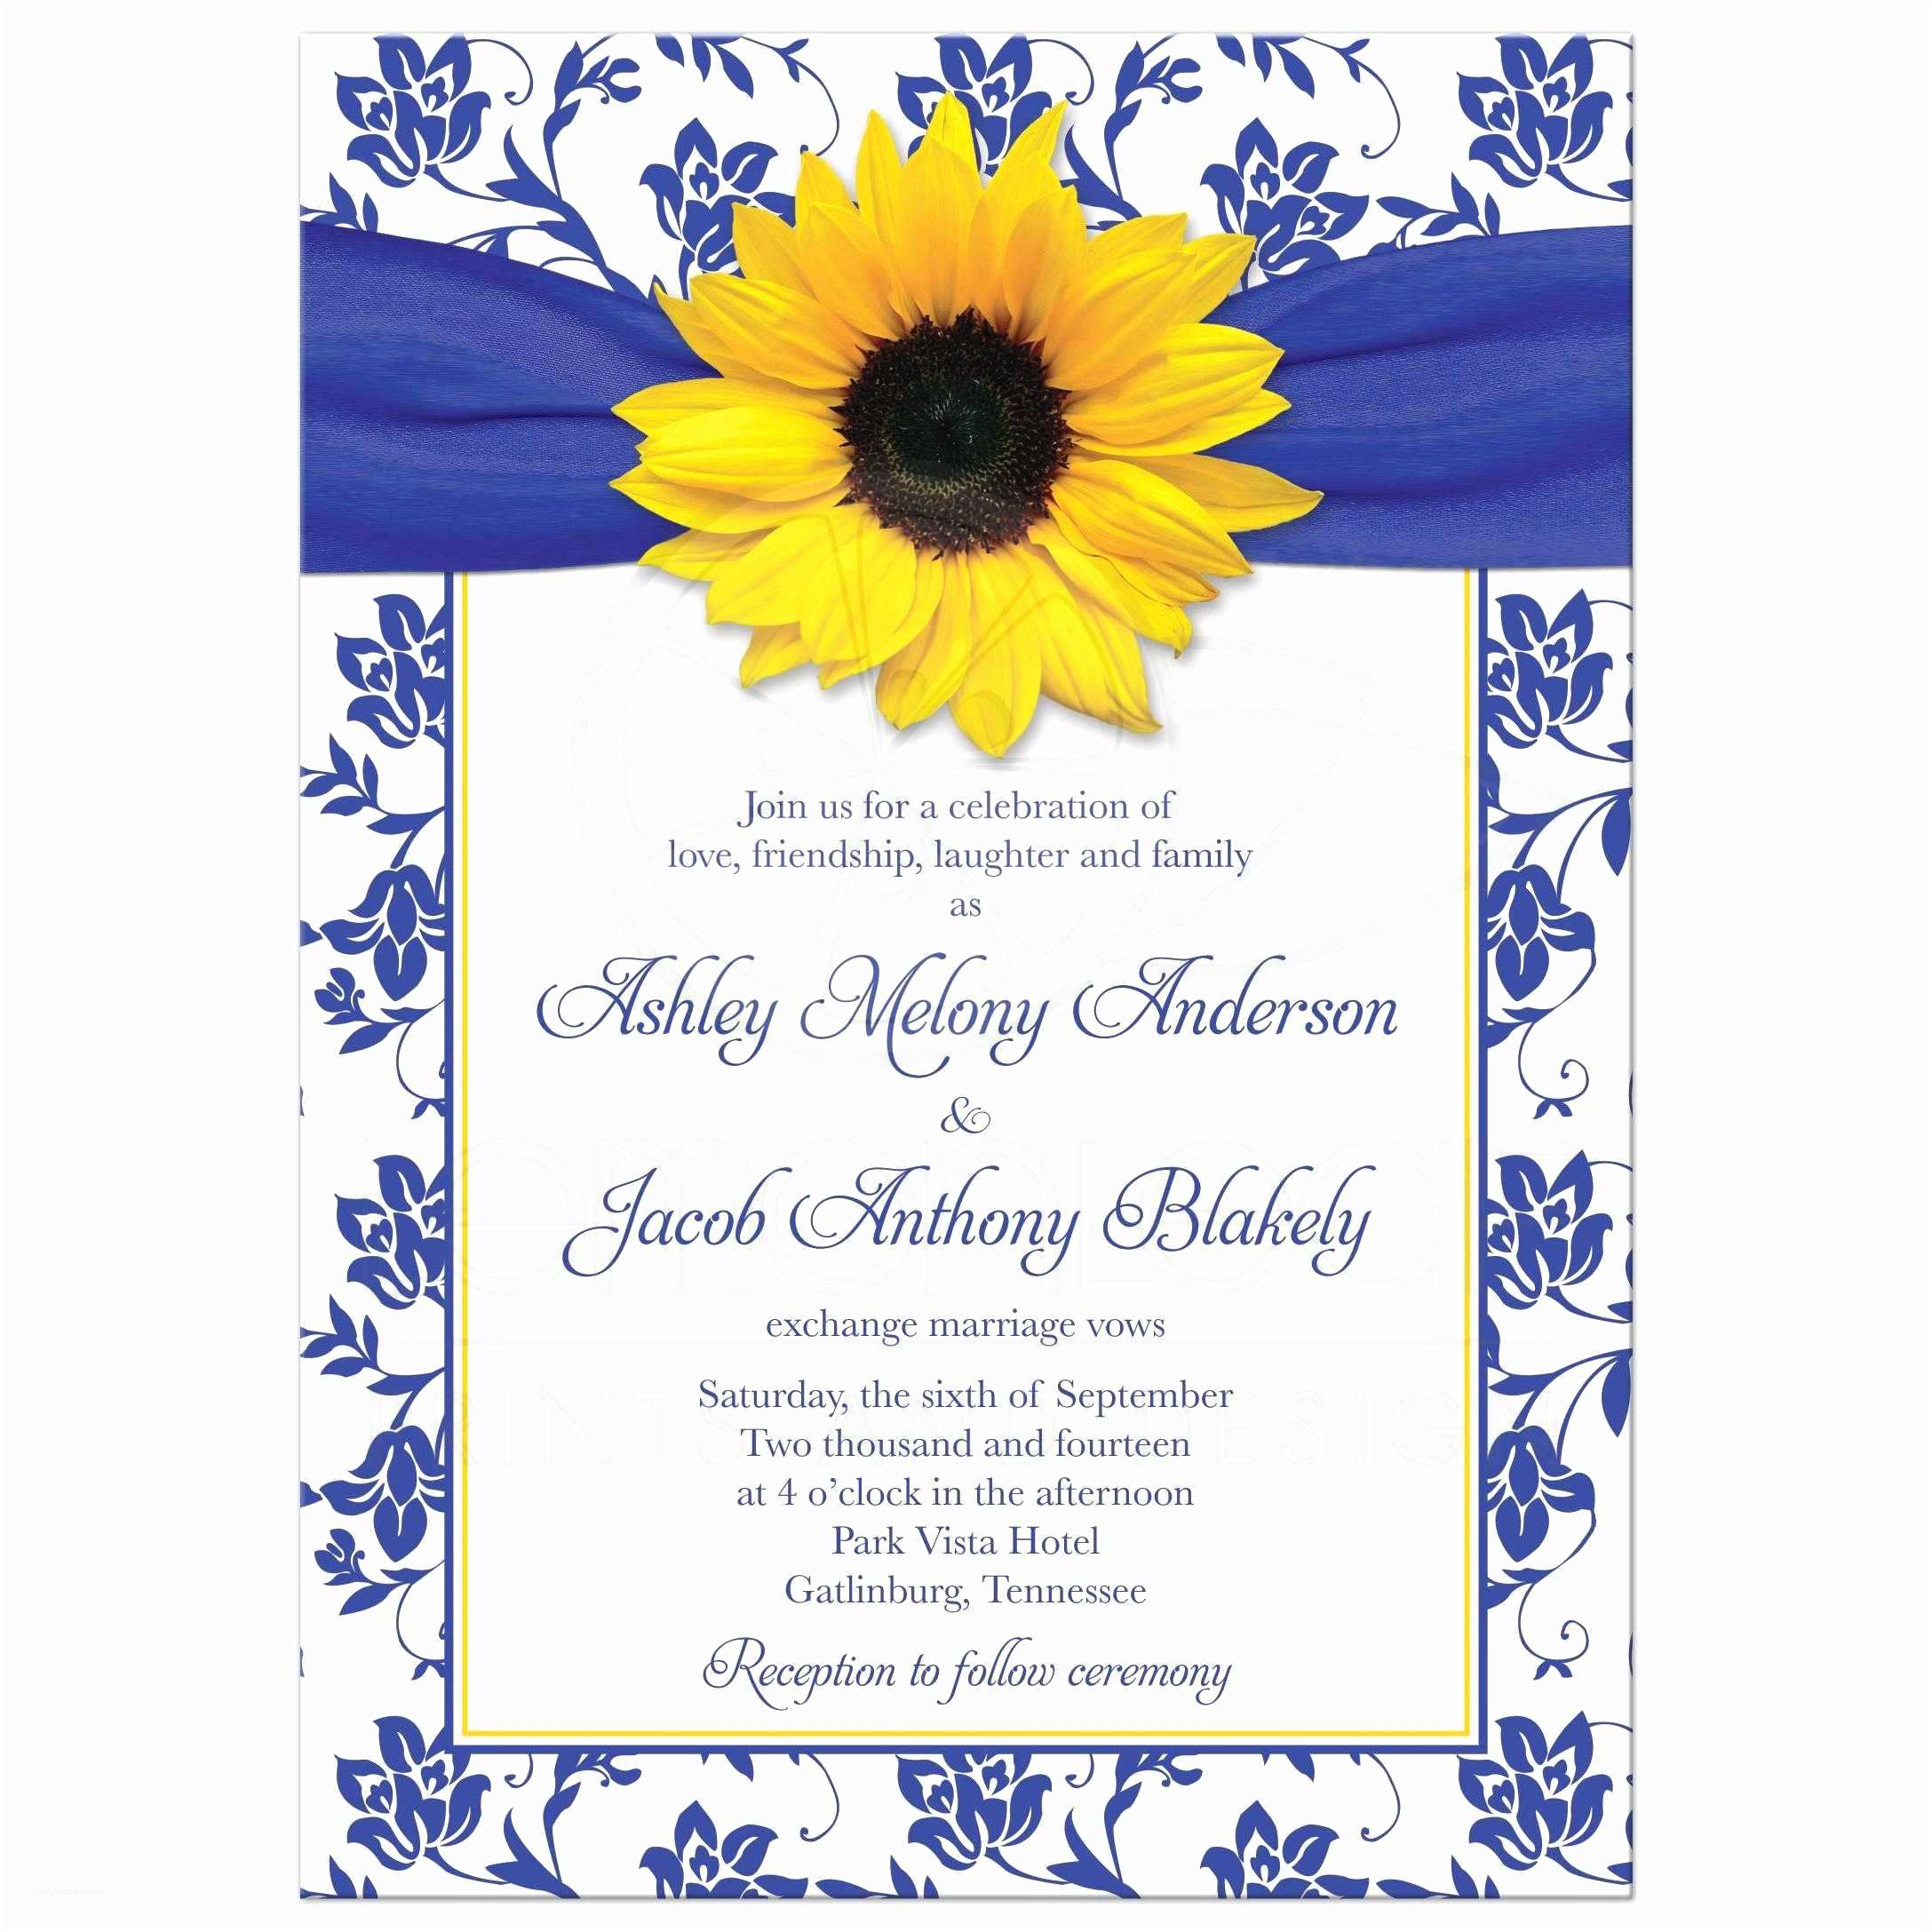 Blue and Yellow Wedding Invitations Wedding Invitation